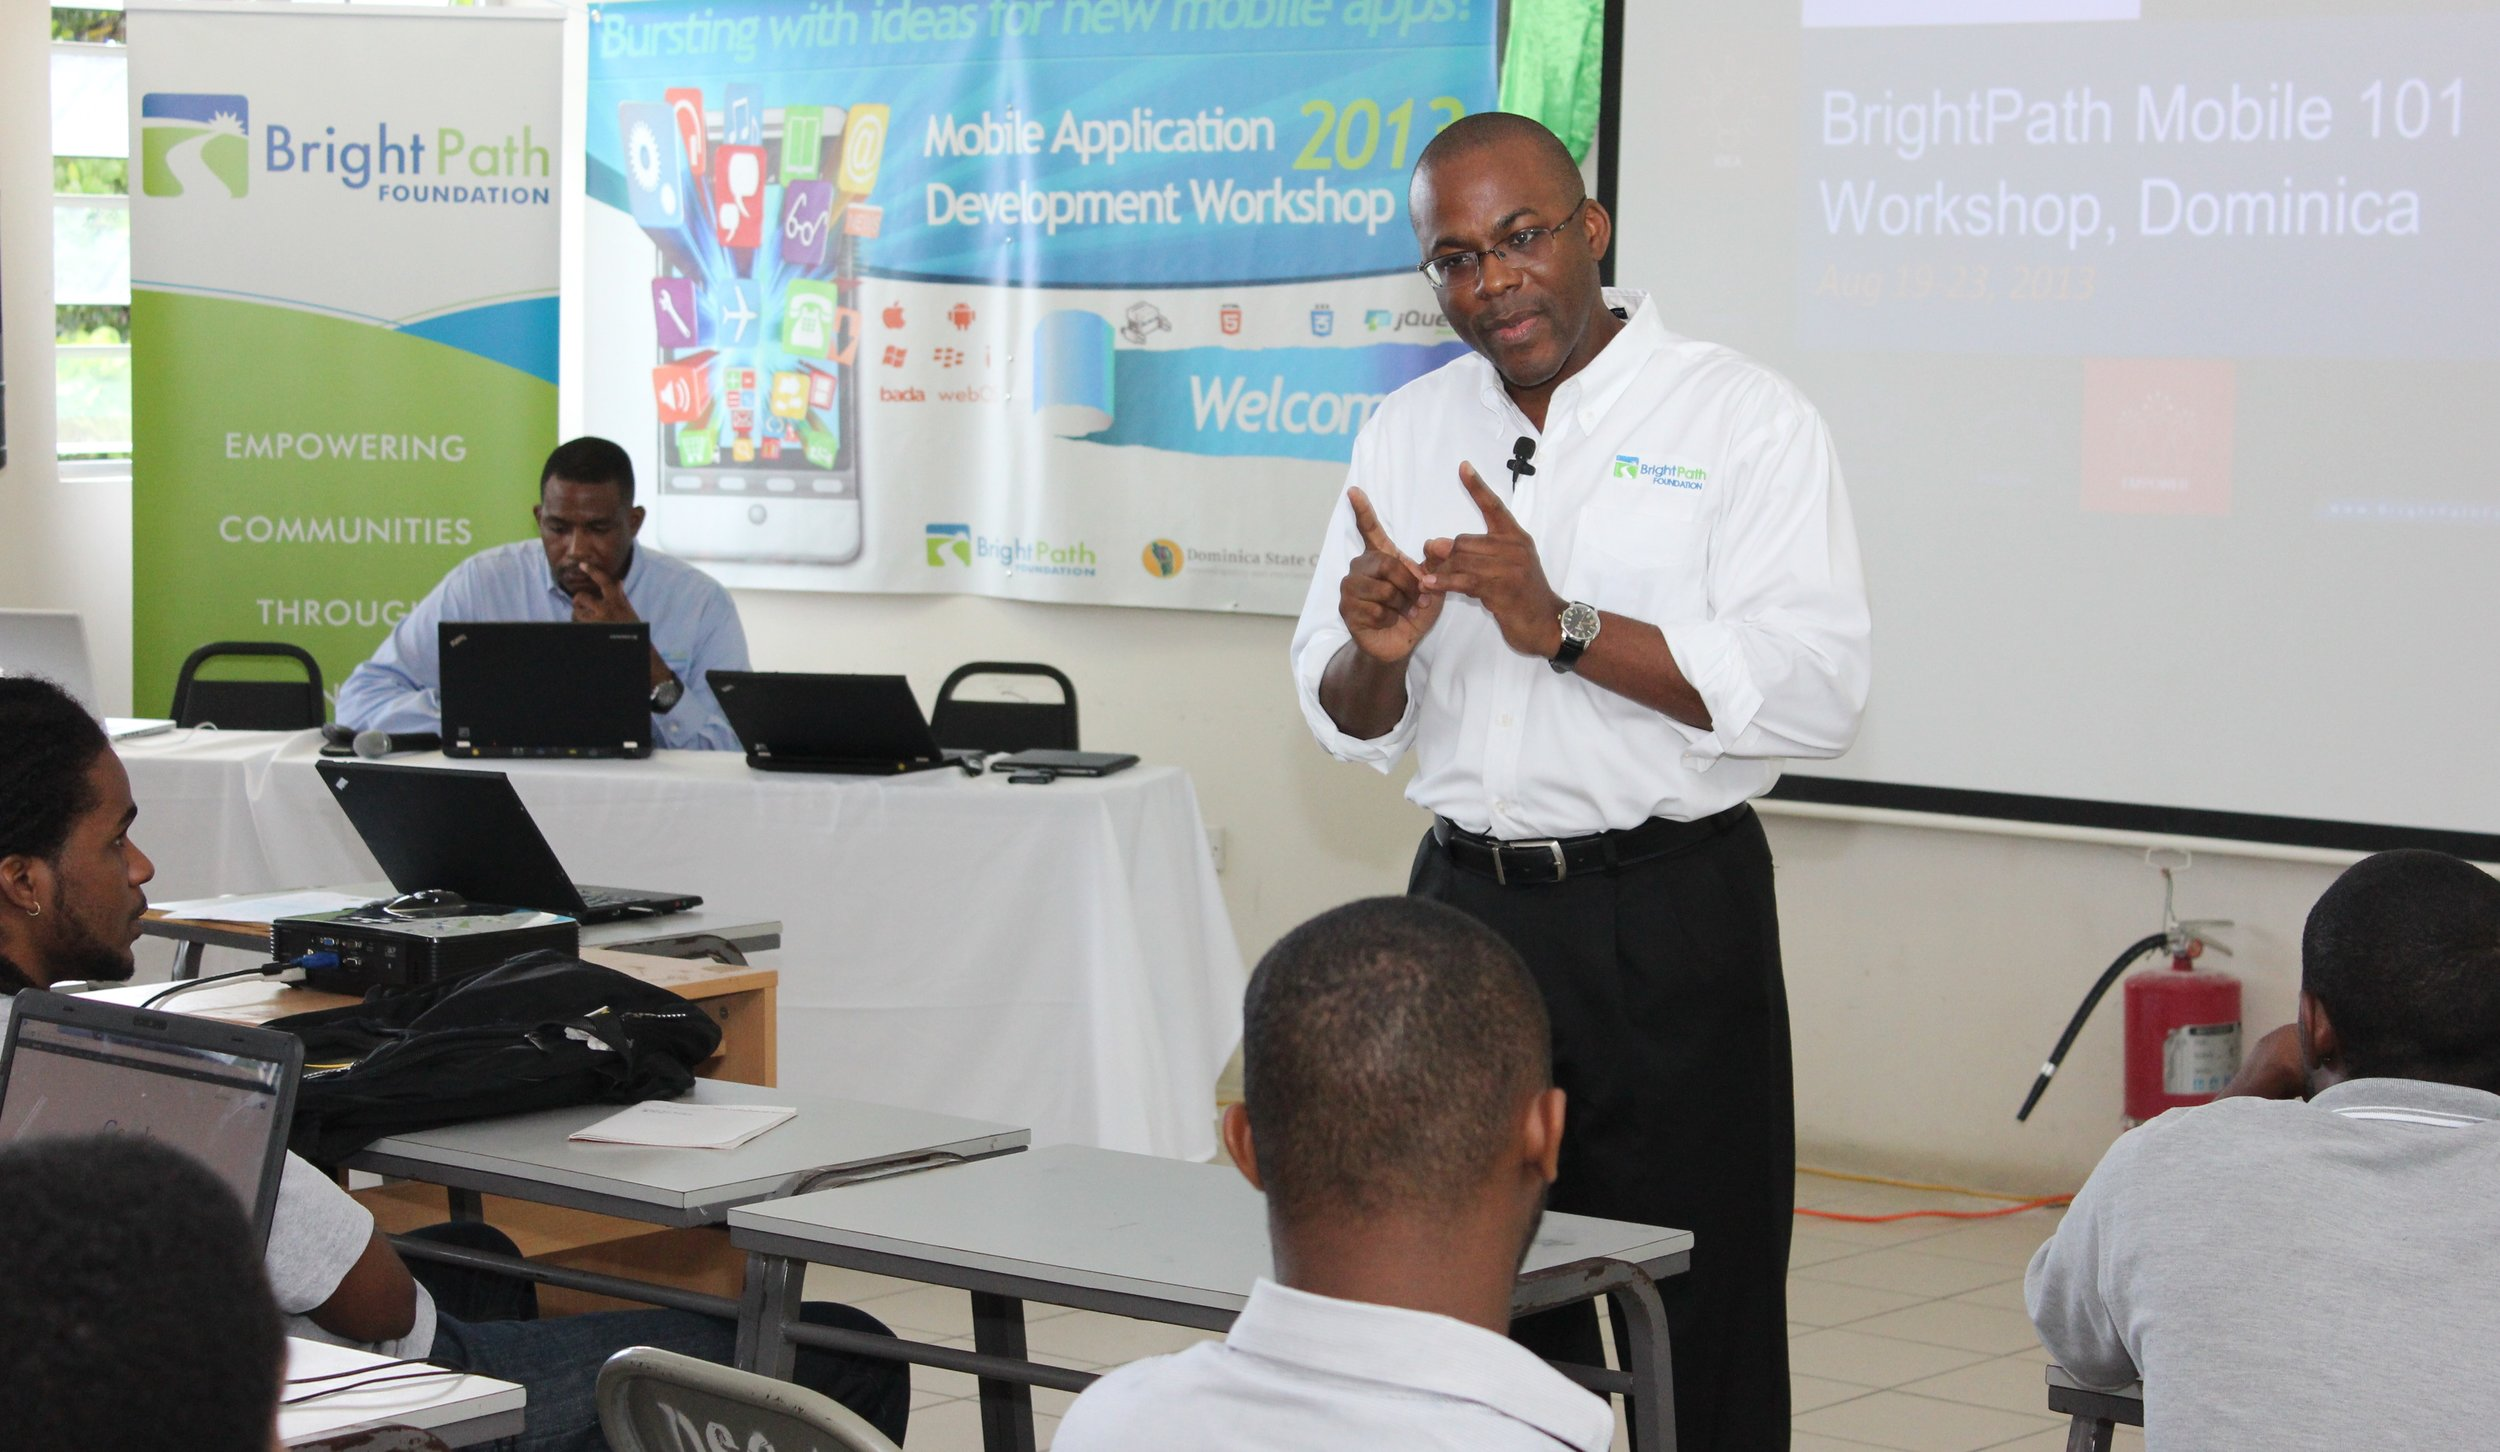 BrightPath Founder Bevil Wooding (standing) addresses participants at the Dominica Mobile App Workshop hosted by Dominica State College, Roseau from August 17-24, 2013. PHOTO COURTESY BRIGHTPATH FOUNDATION.